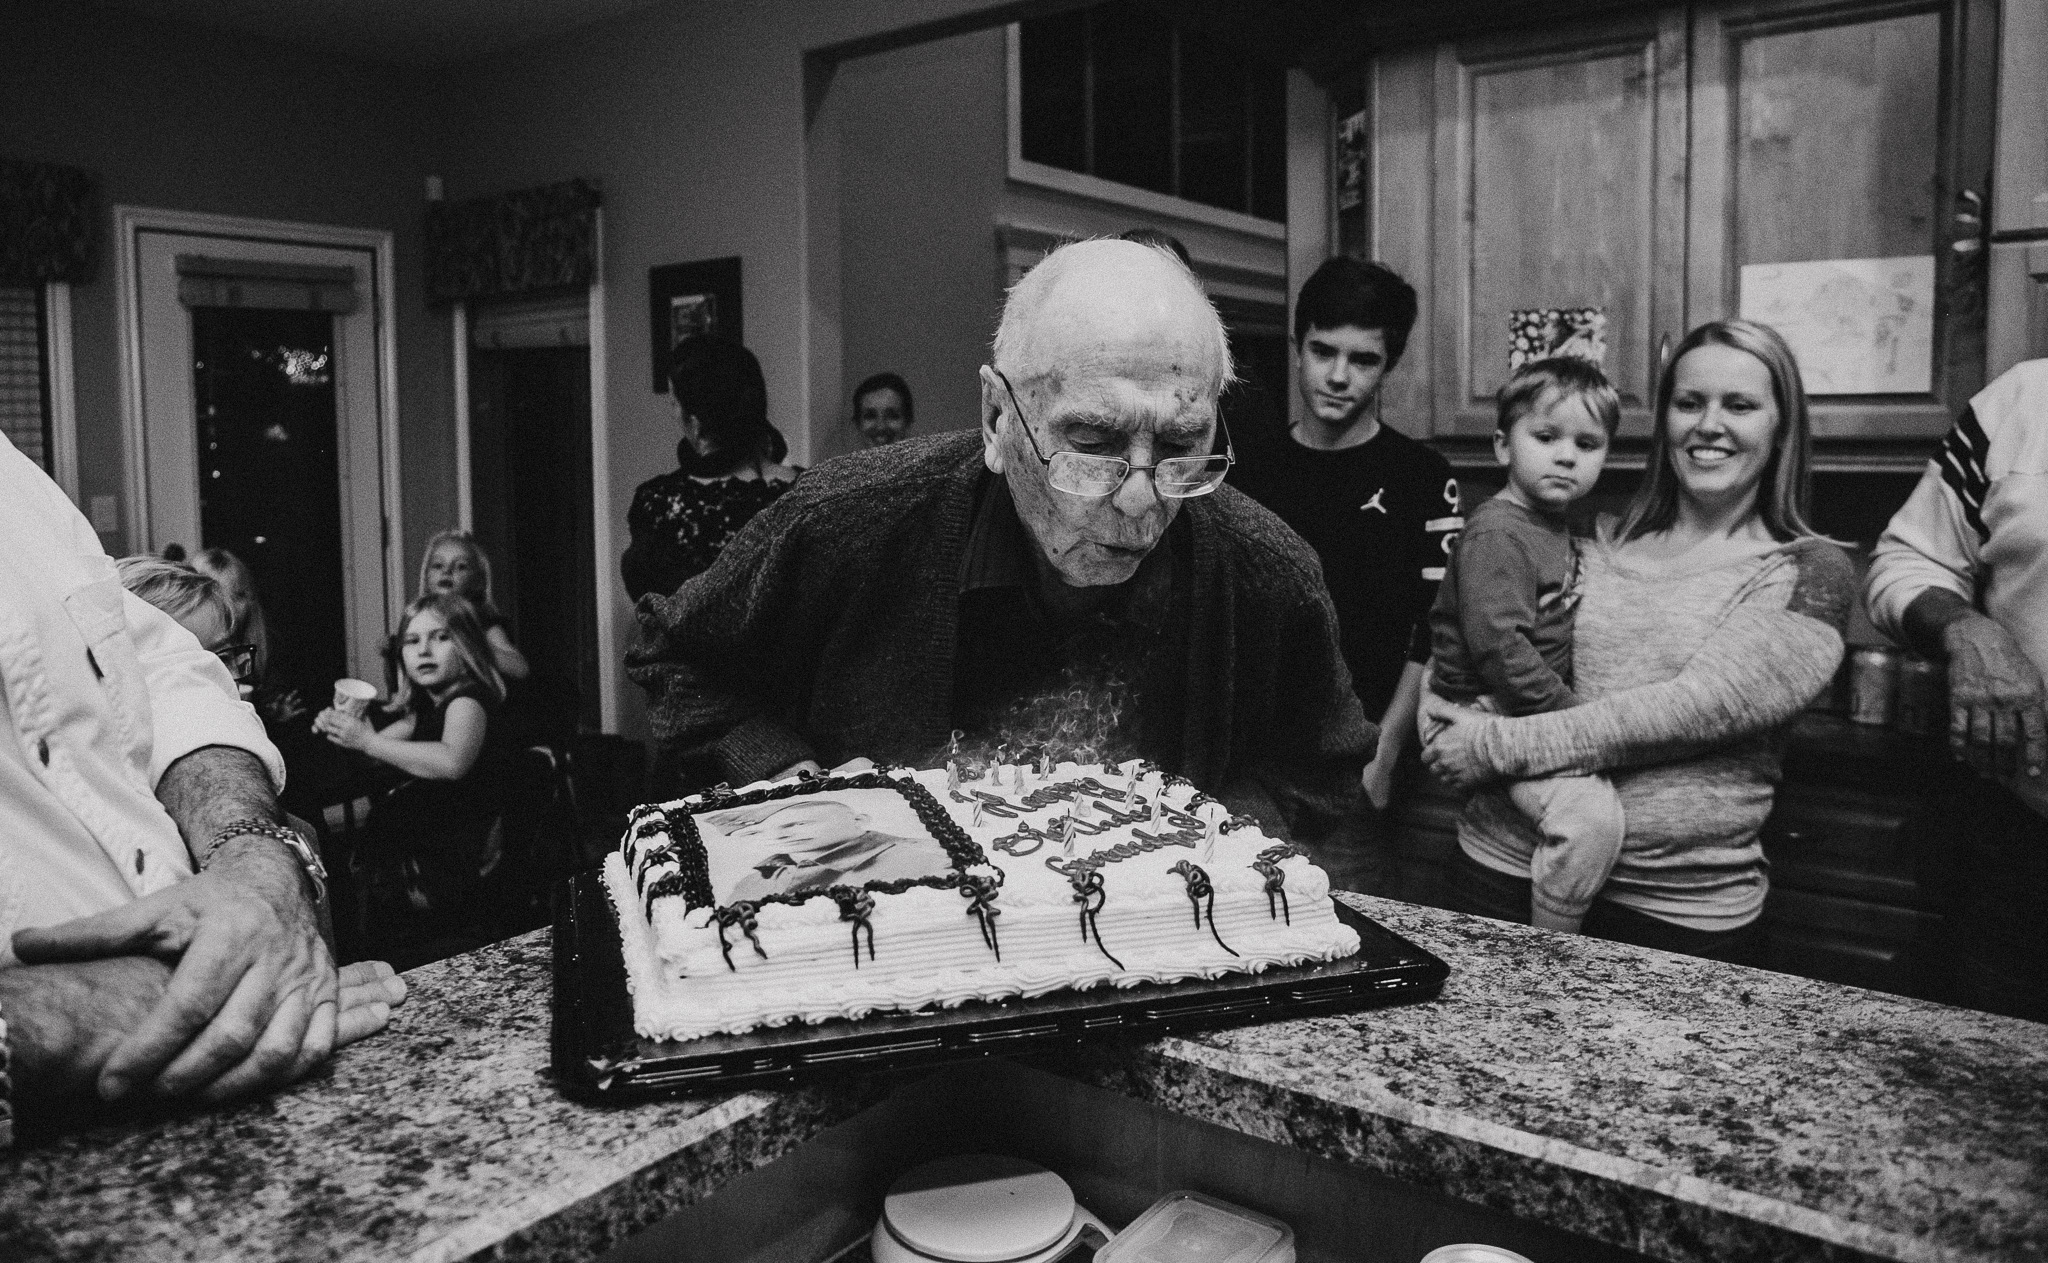 Grandpa Russ - This birthday thing is some serious business